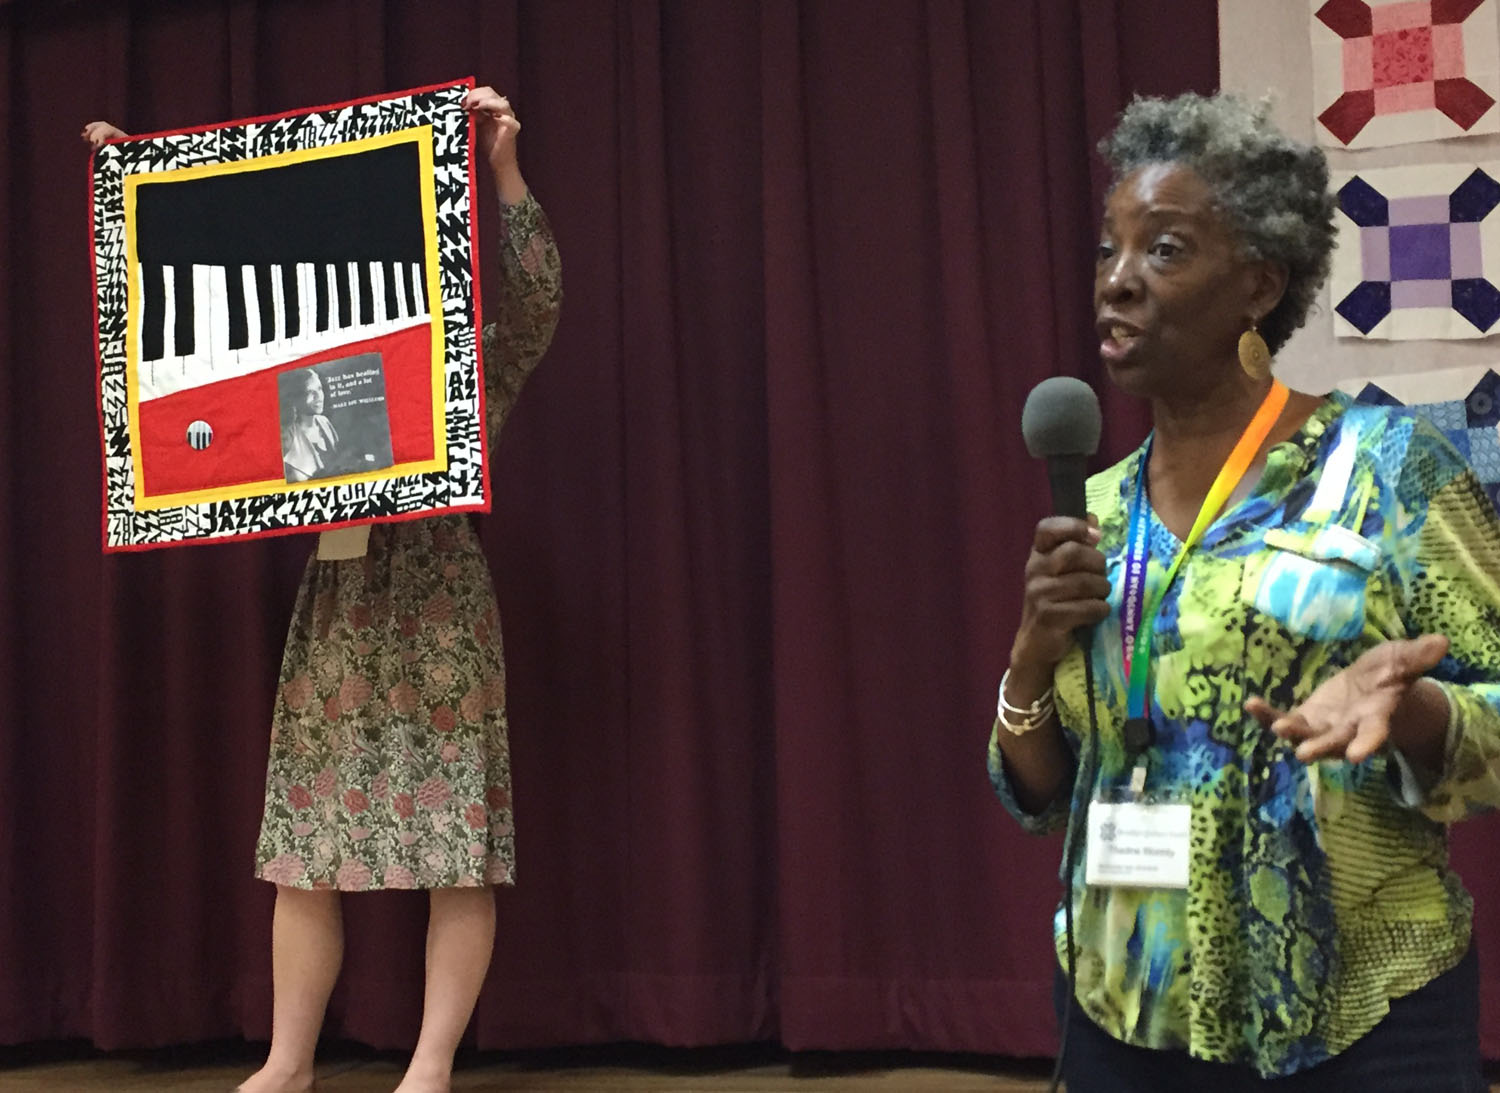 Tribute to Mary Lou Williams quilt by Thadine Wormly